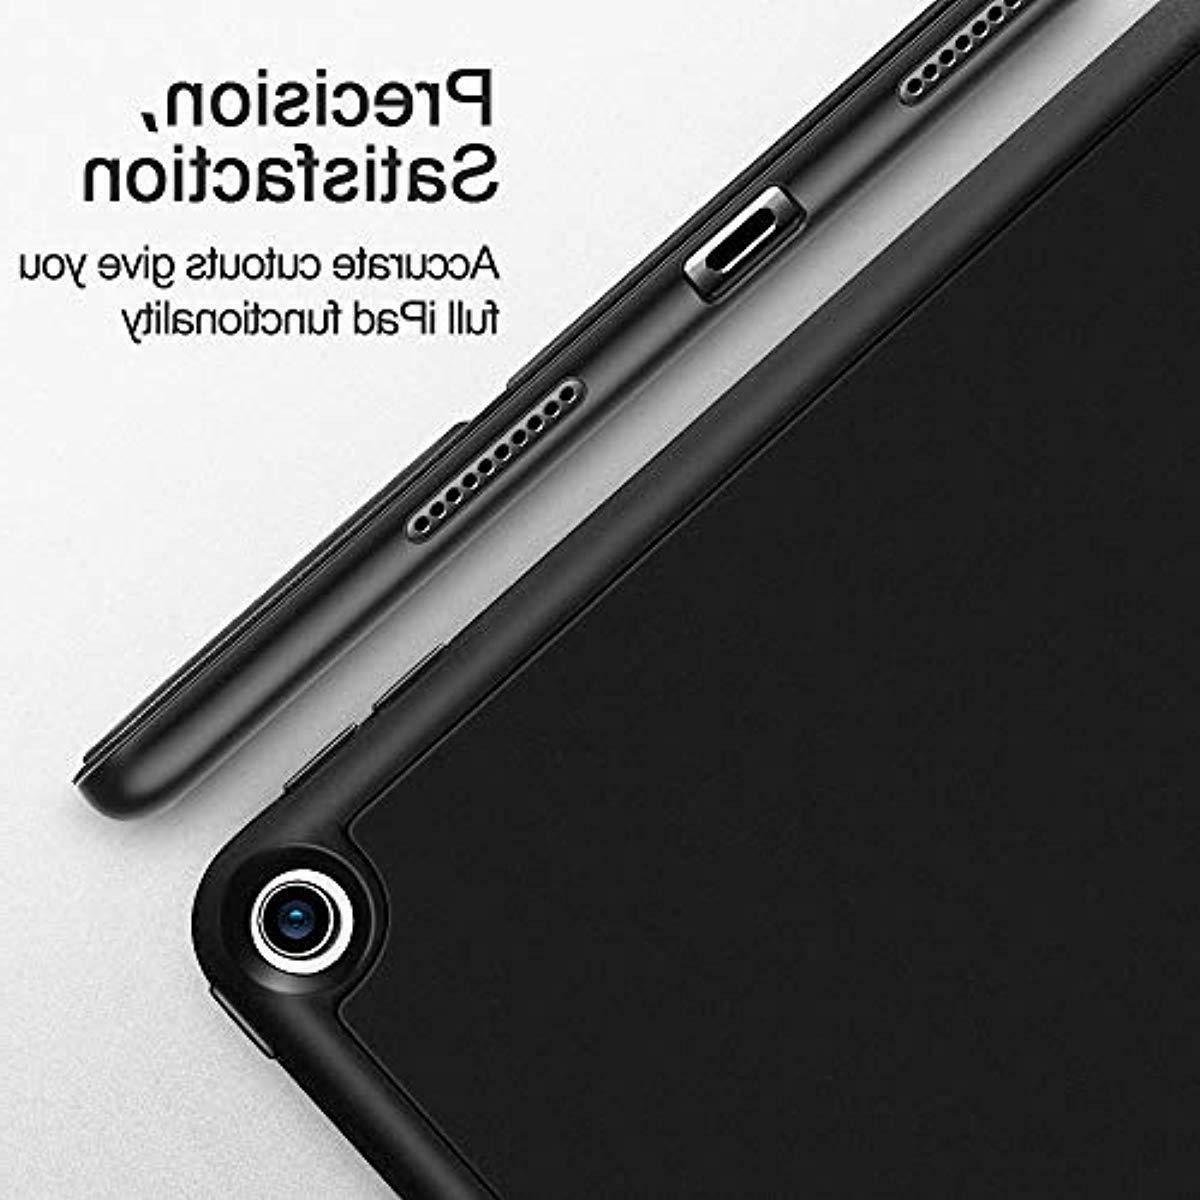 ESR Pencil Case for iPad 5 2019, Soft TPU